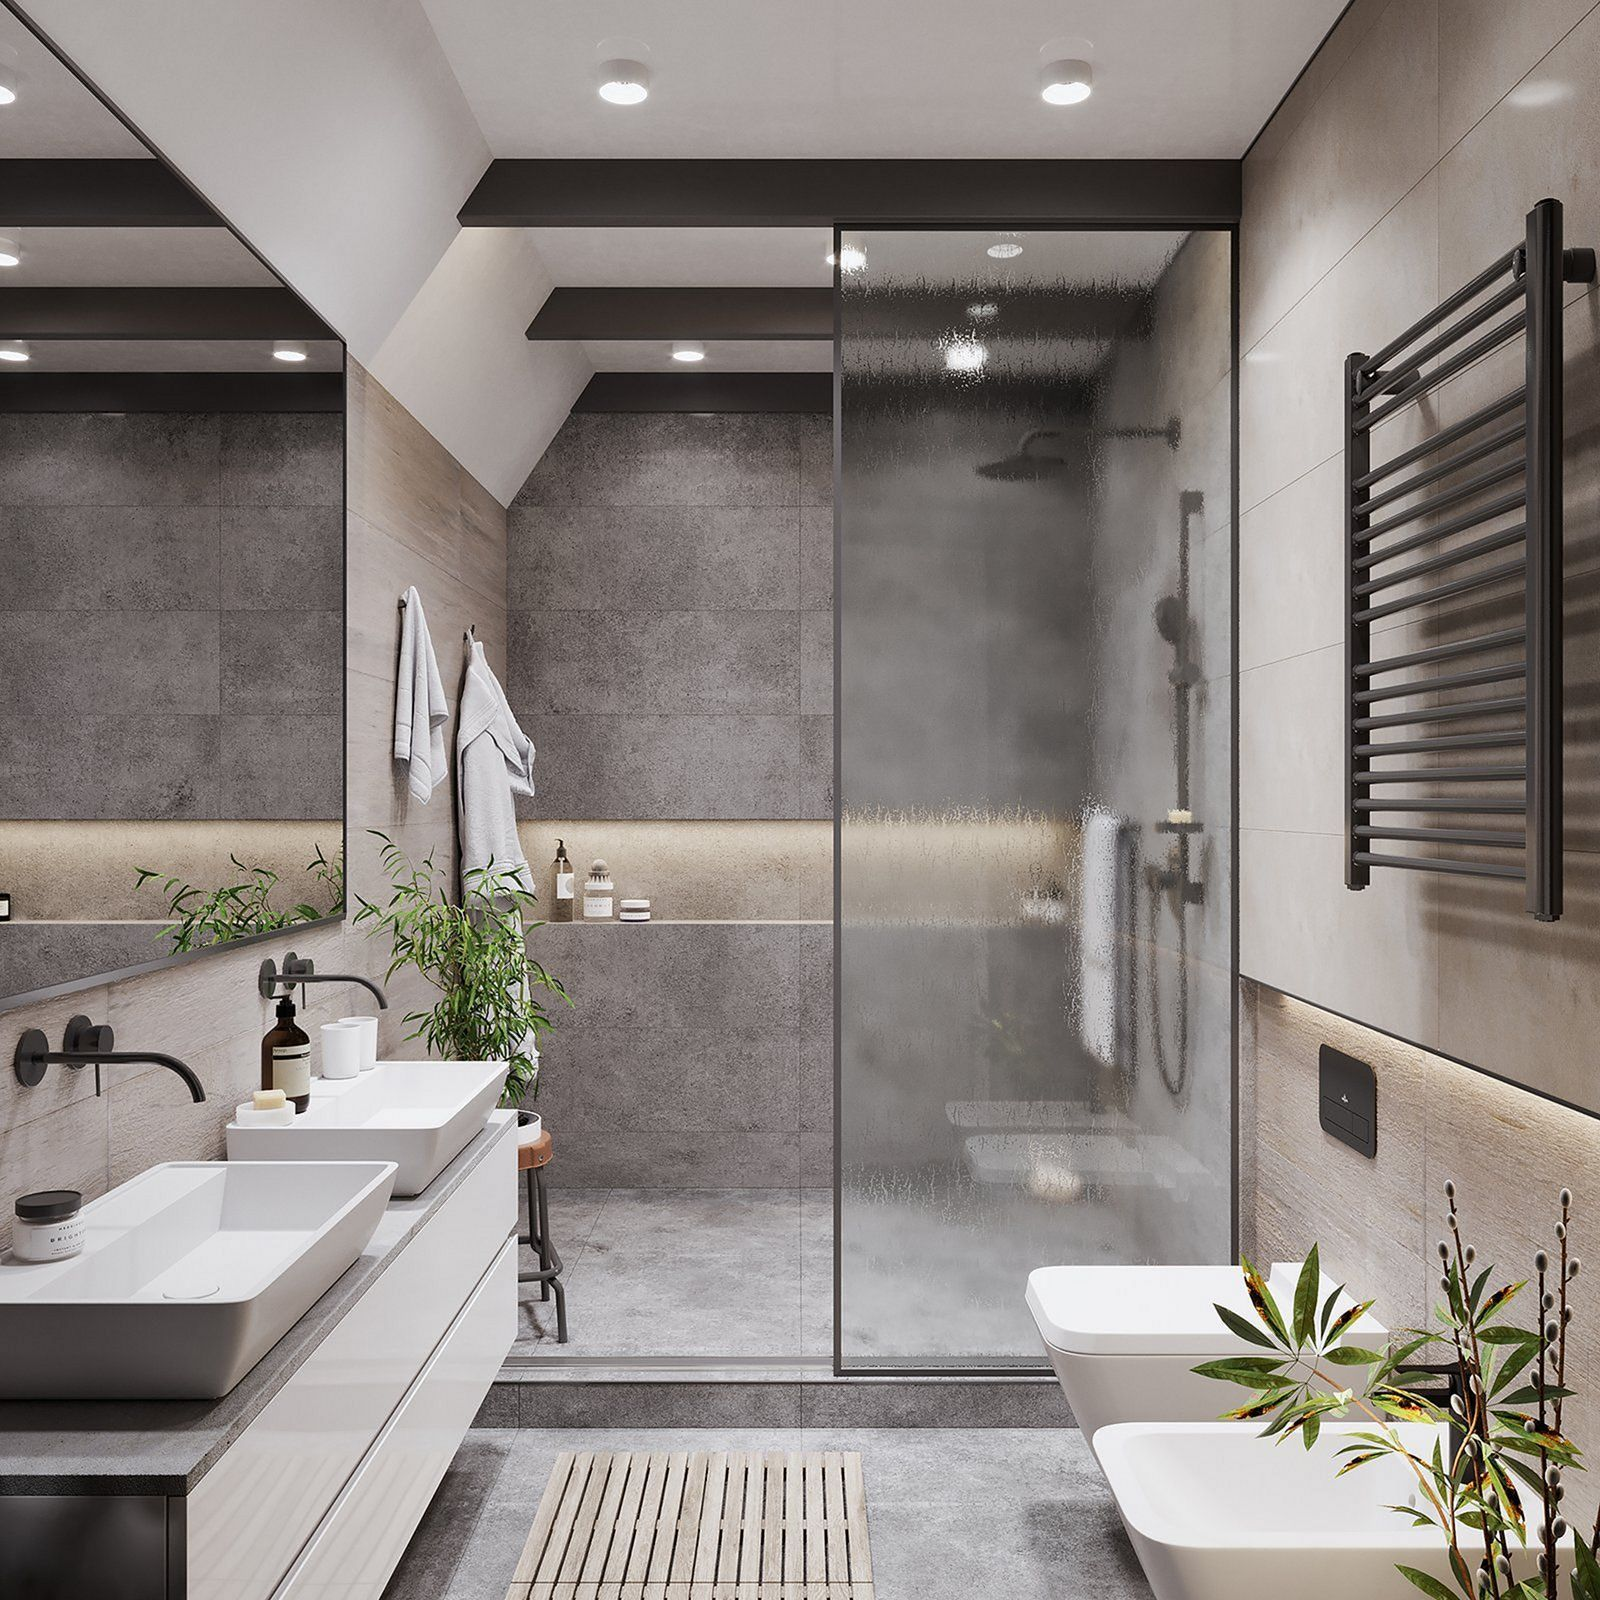 15 Unique Modern Bathroom Ideas To Bring A More Relaxing